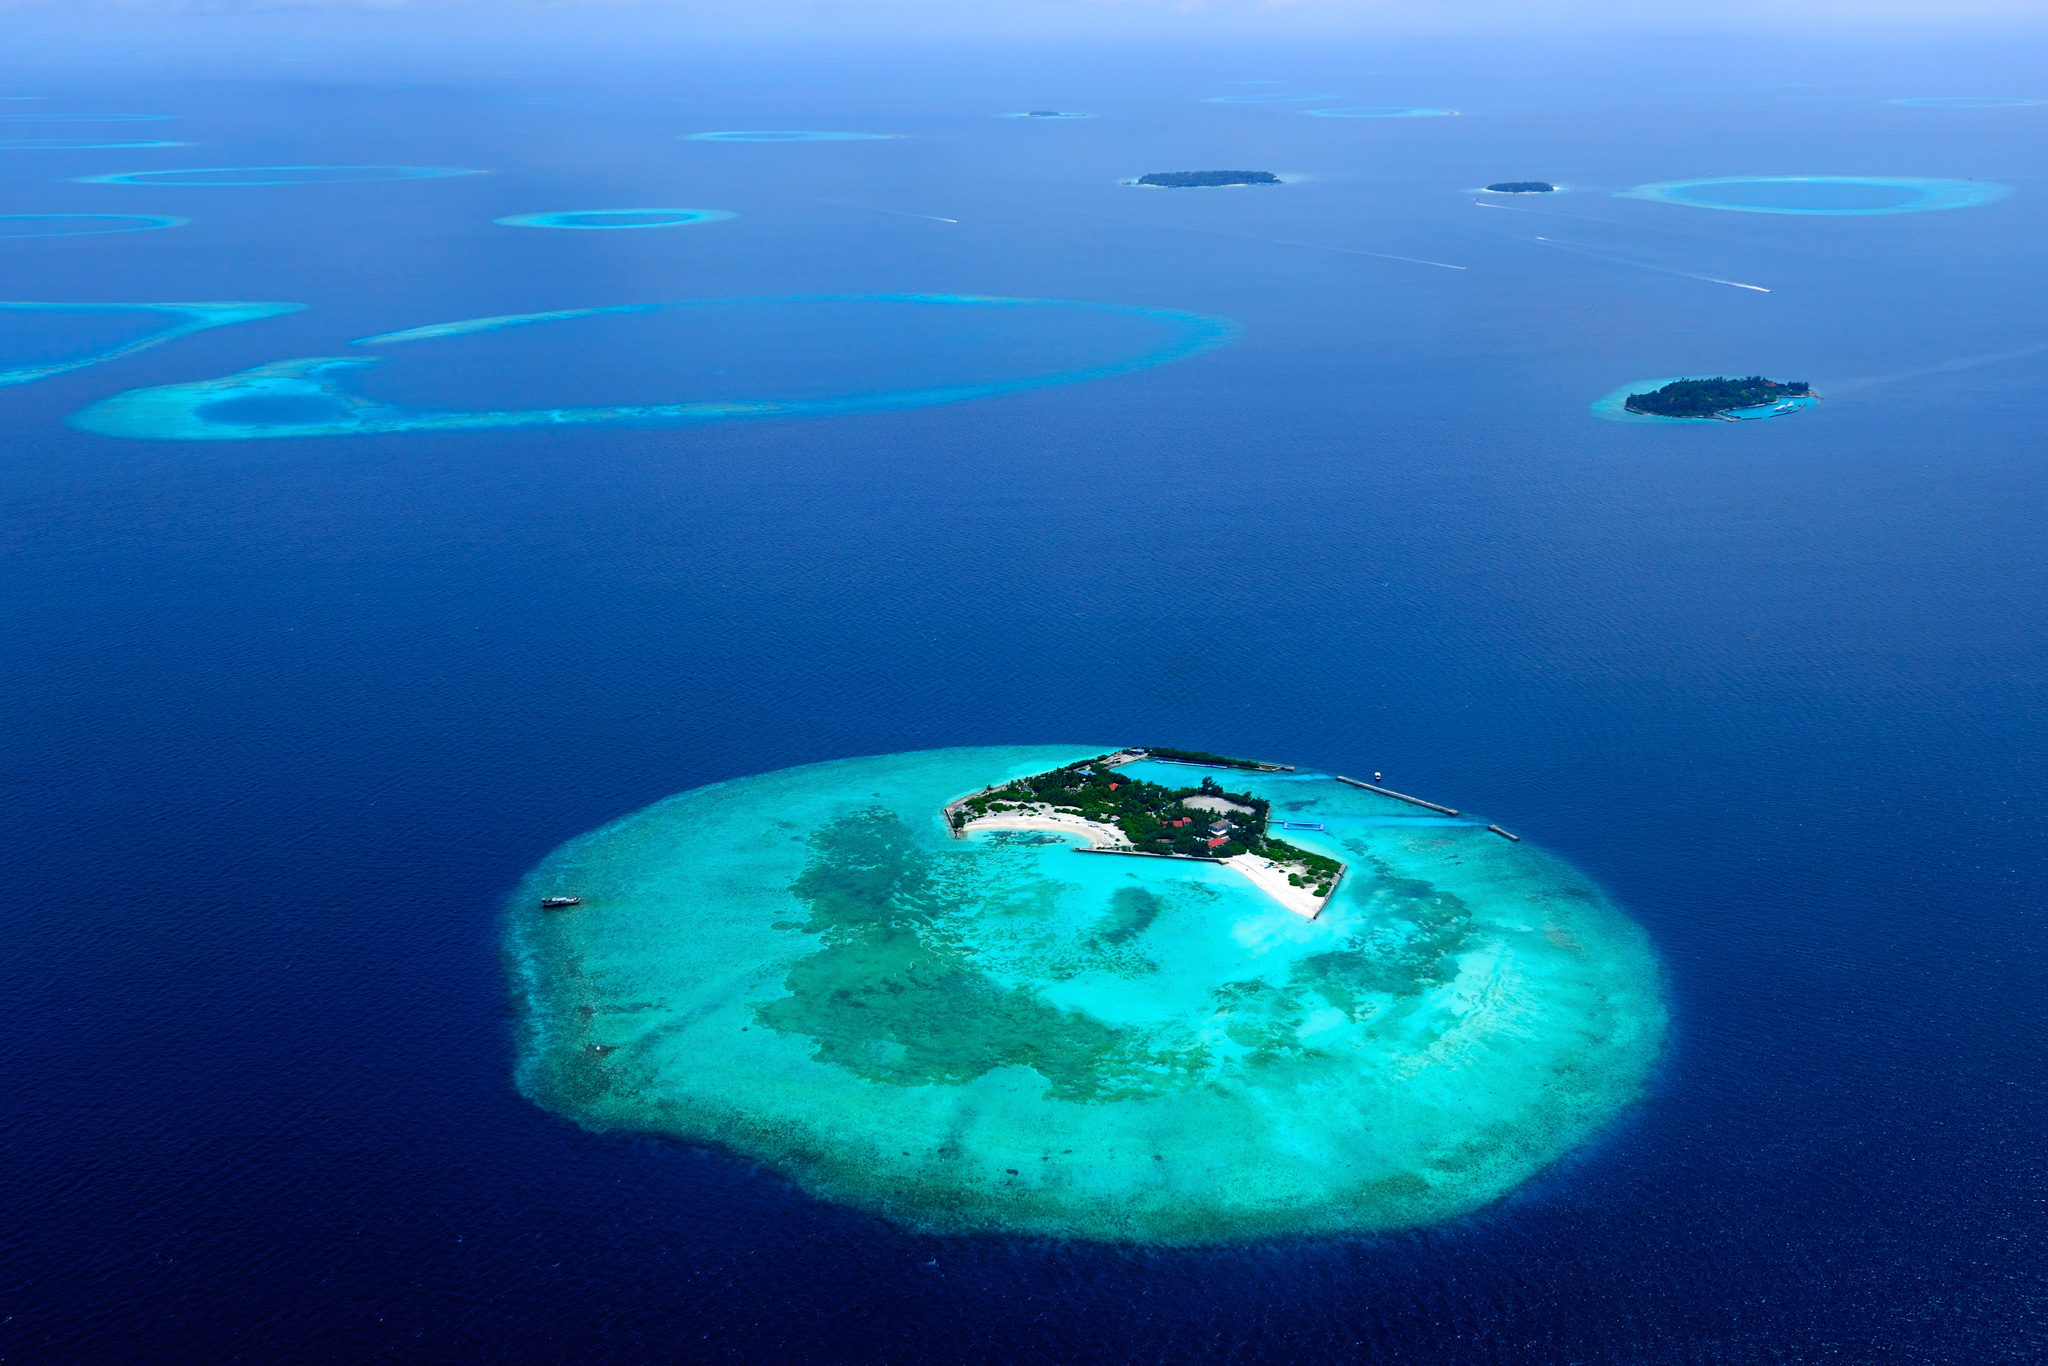 Island in the Maldives